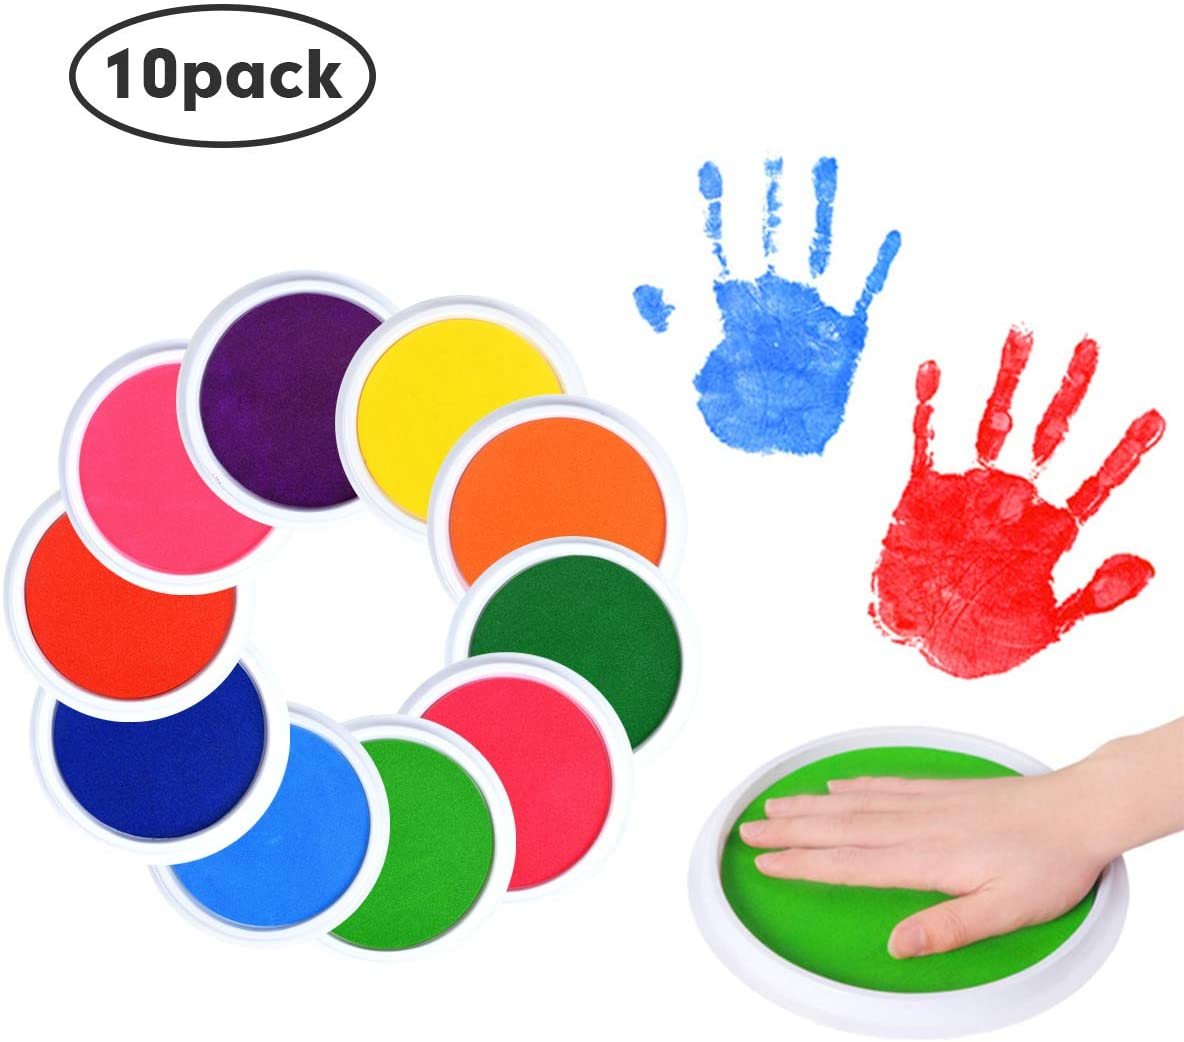 ARELUX 8 Rainbow Color Washable Ink Pad,DIY Ink Pad for Fingerprints Birth Footprint Rubber Stamps